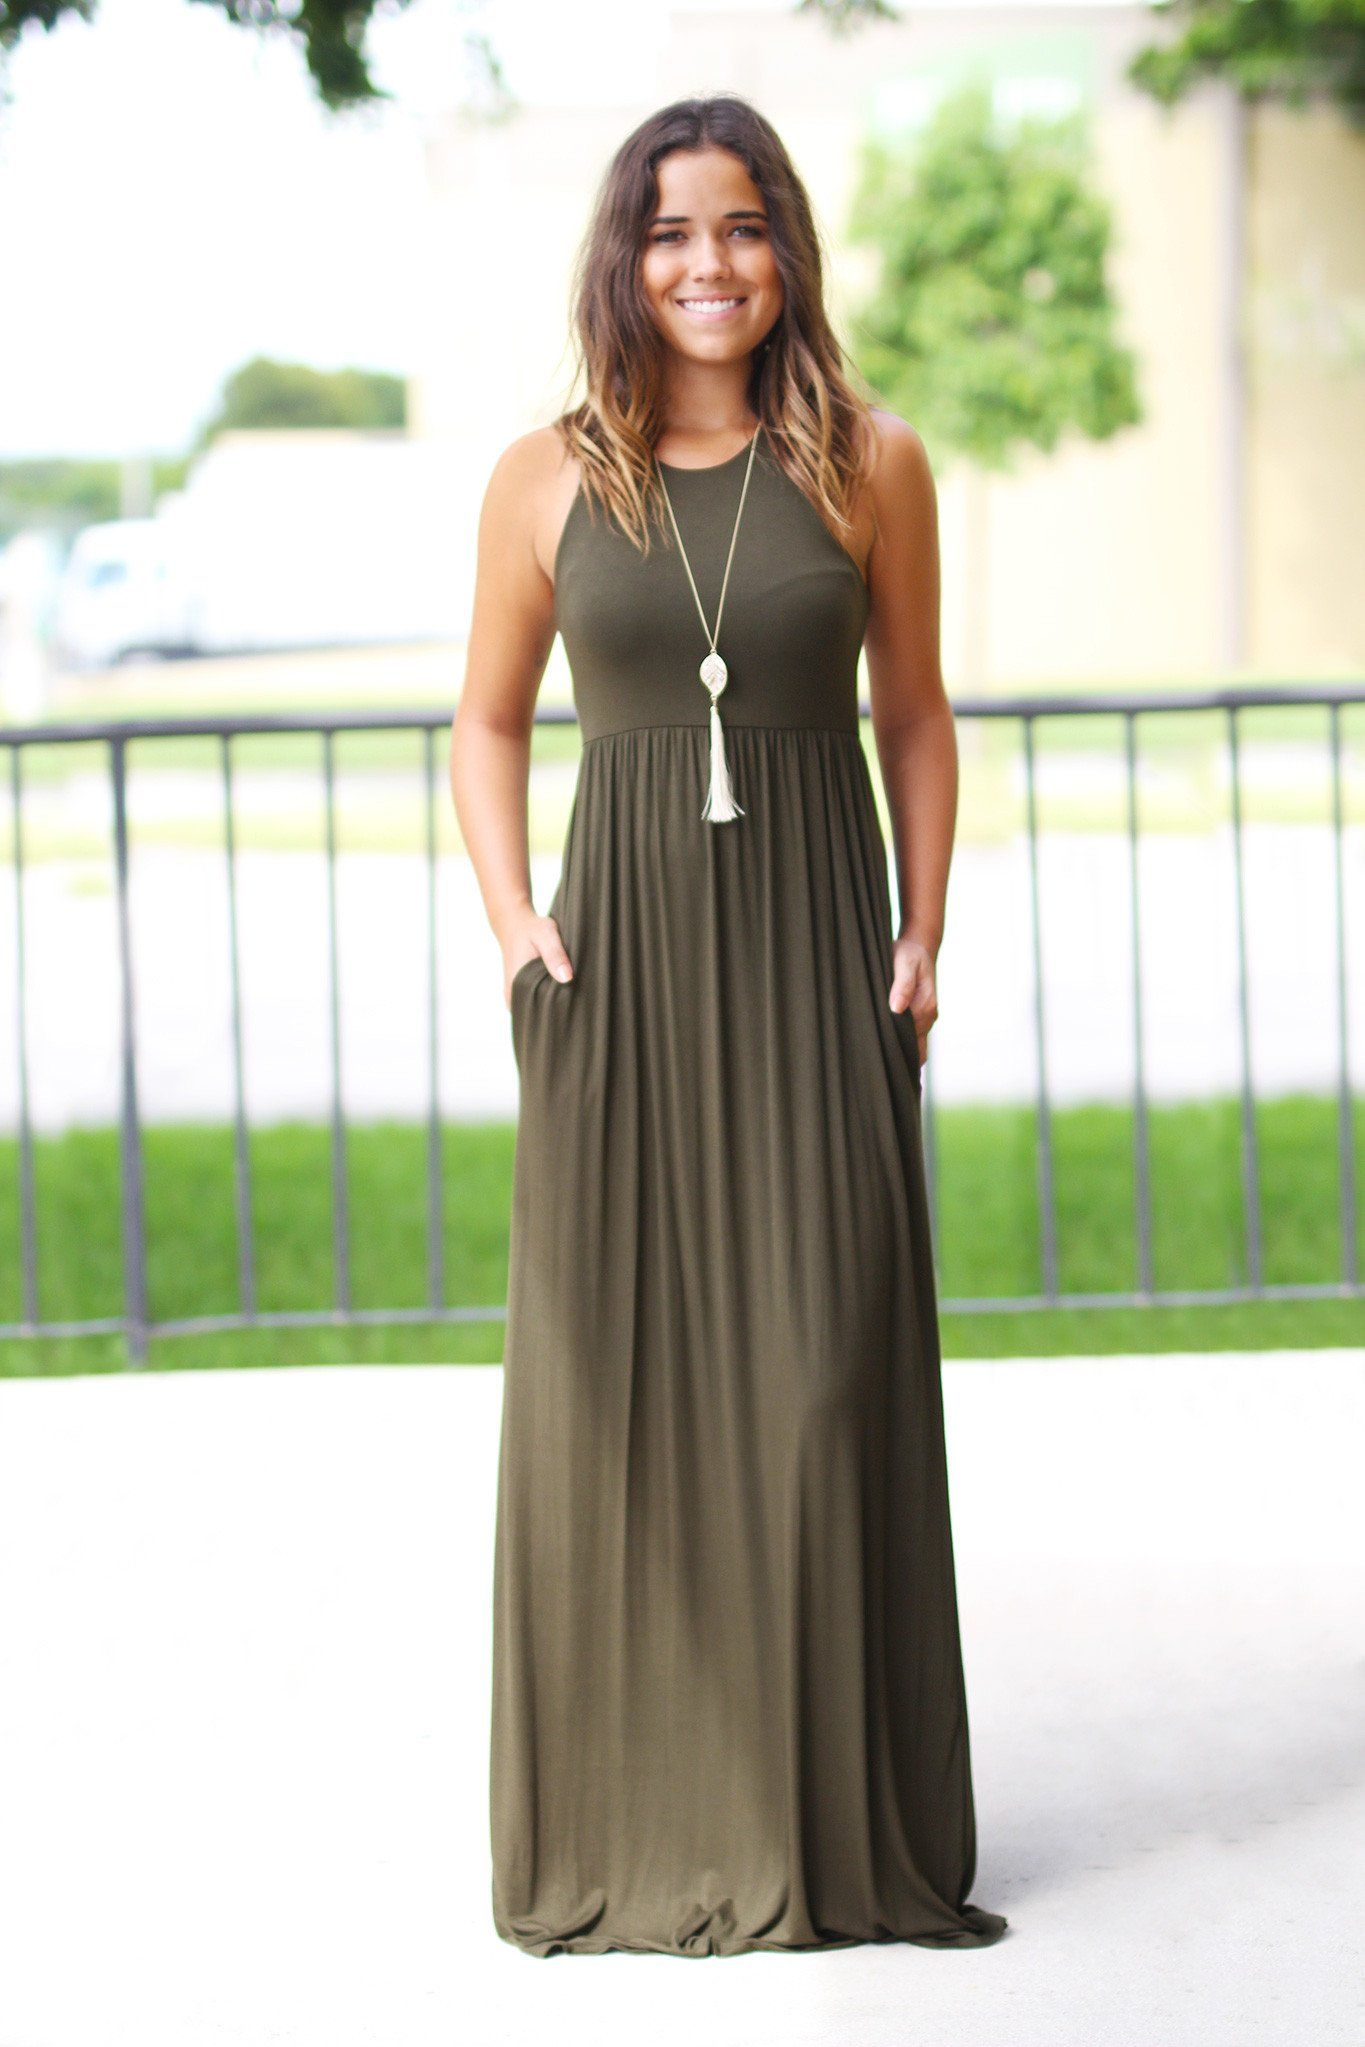 Olive maxi dress with pockets maxi dresses clothes and stitch olive maxi dress with pockets ombrellifo Images